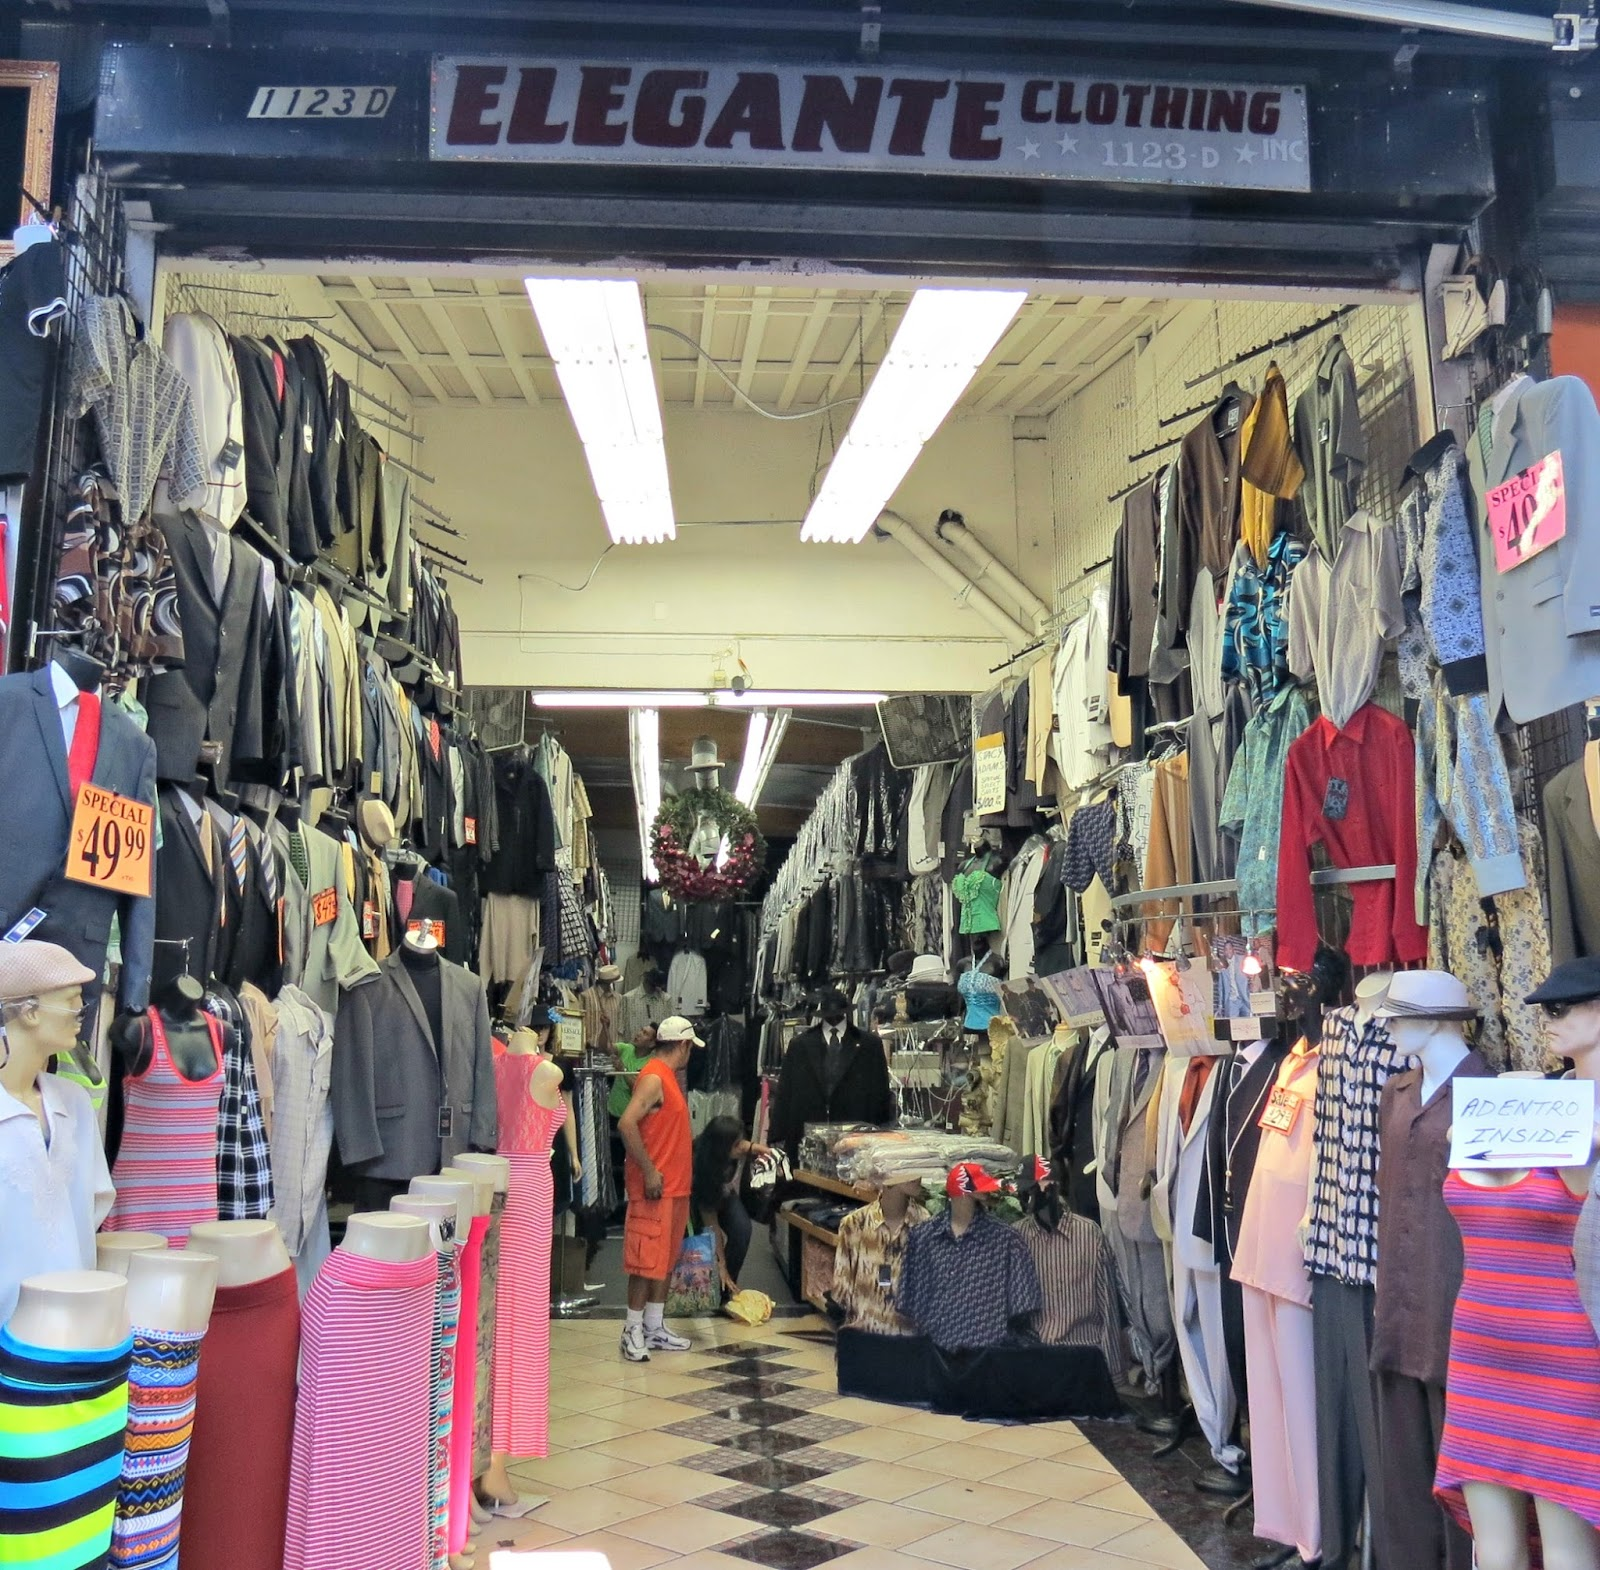 5ab3f648c Well Elegante Clothing is actually a men s clothing store